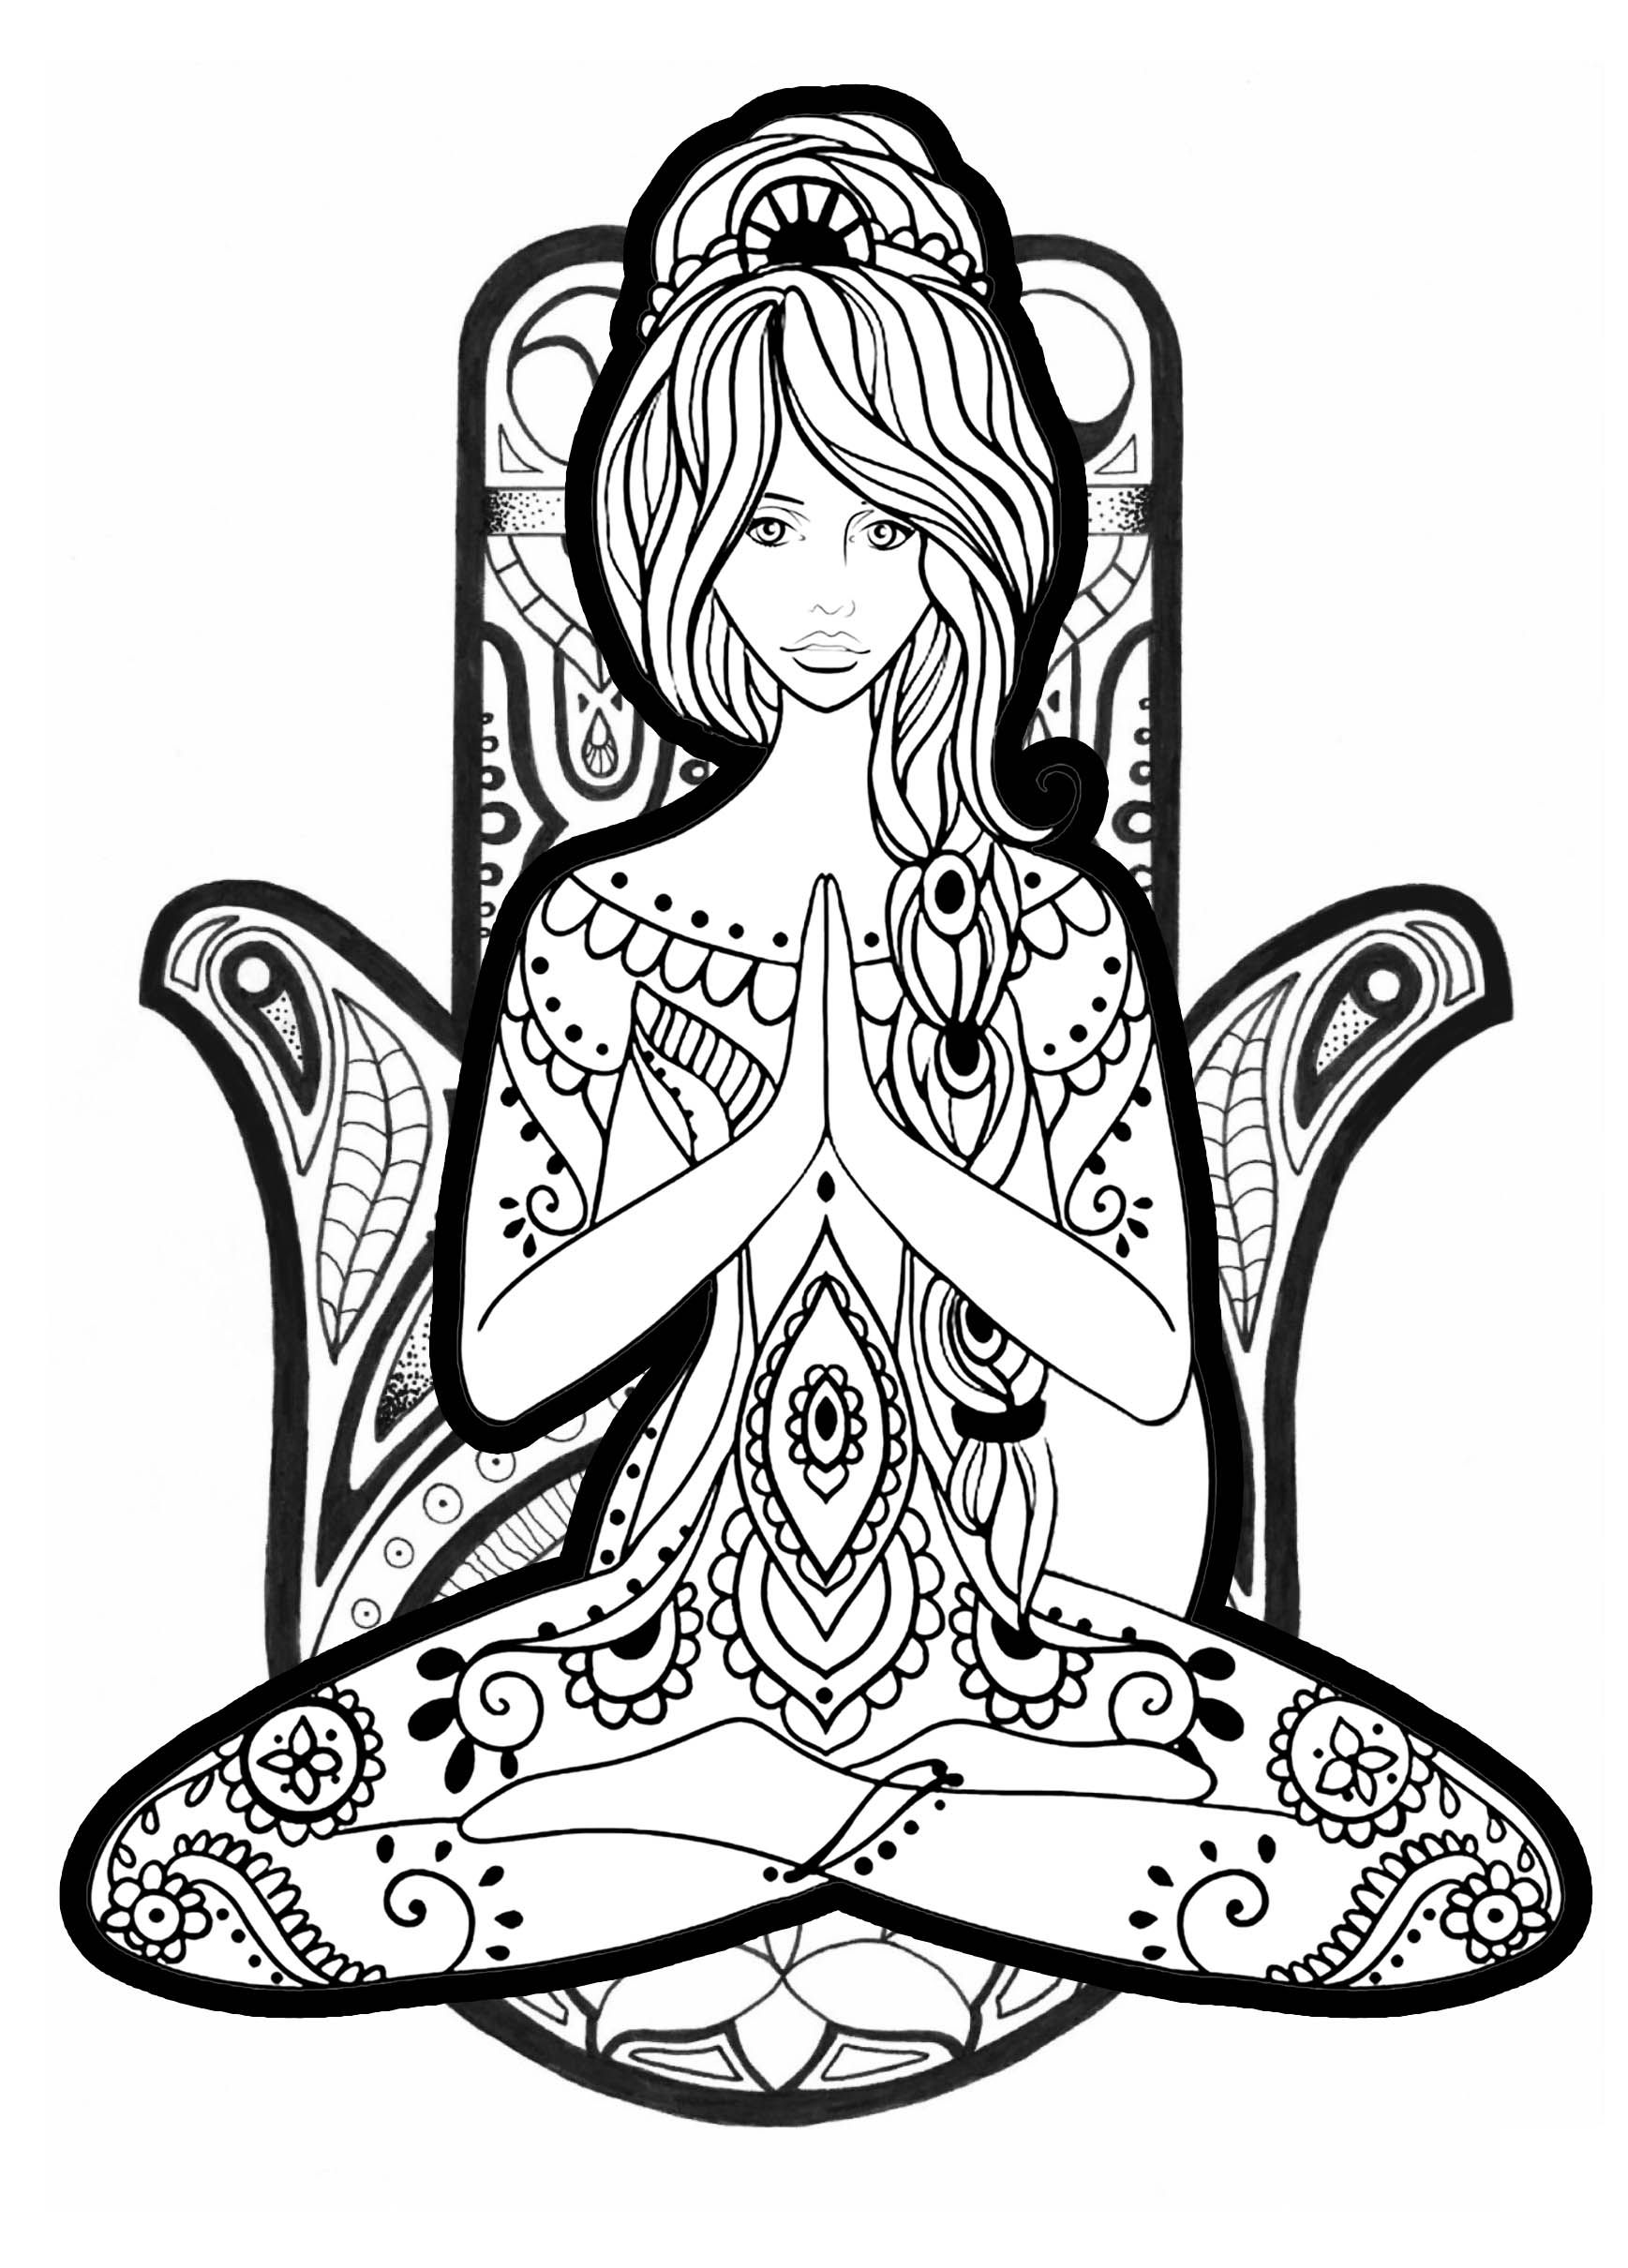 Yoga Coloring Page Difficult From The Gallery Zen Free